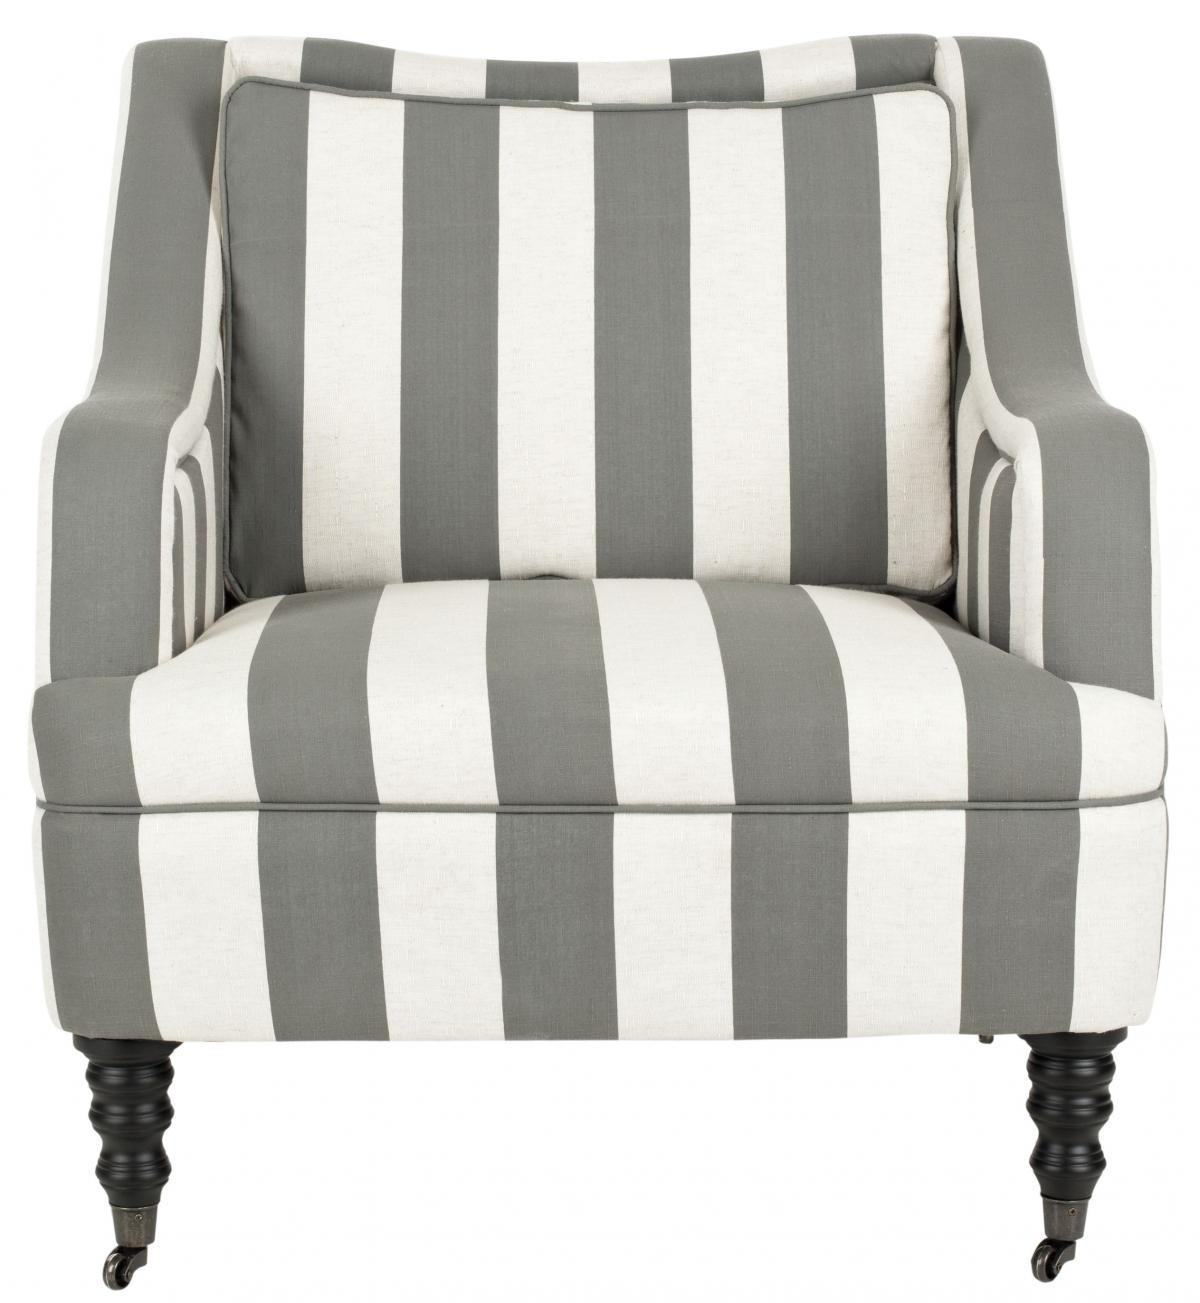 Strange Mcr4652A Accent Chairs Furniture By Safavieh Andrewgaddart Wooden Chair Designs For Living Room Andrewgaddartcom